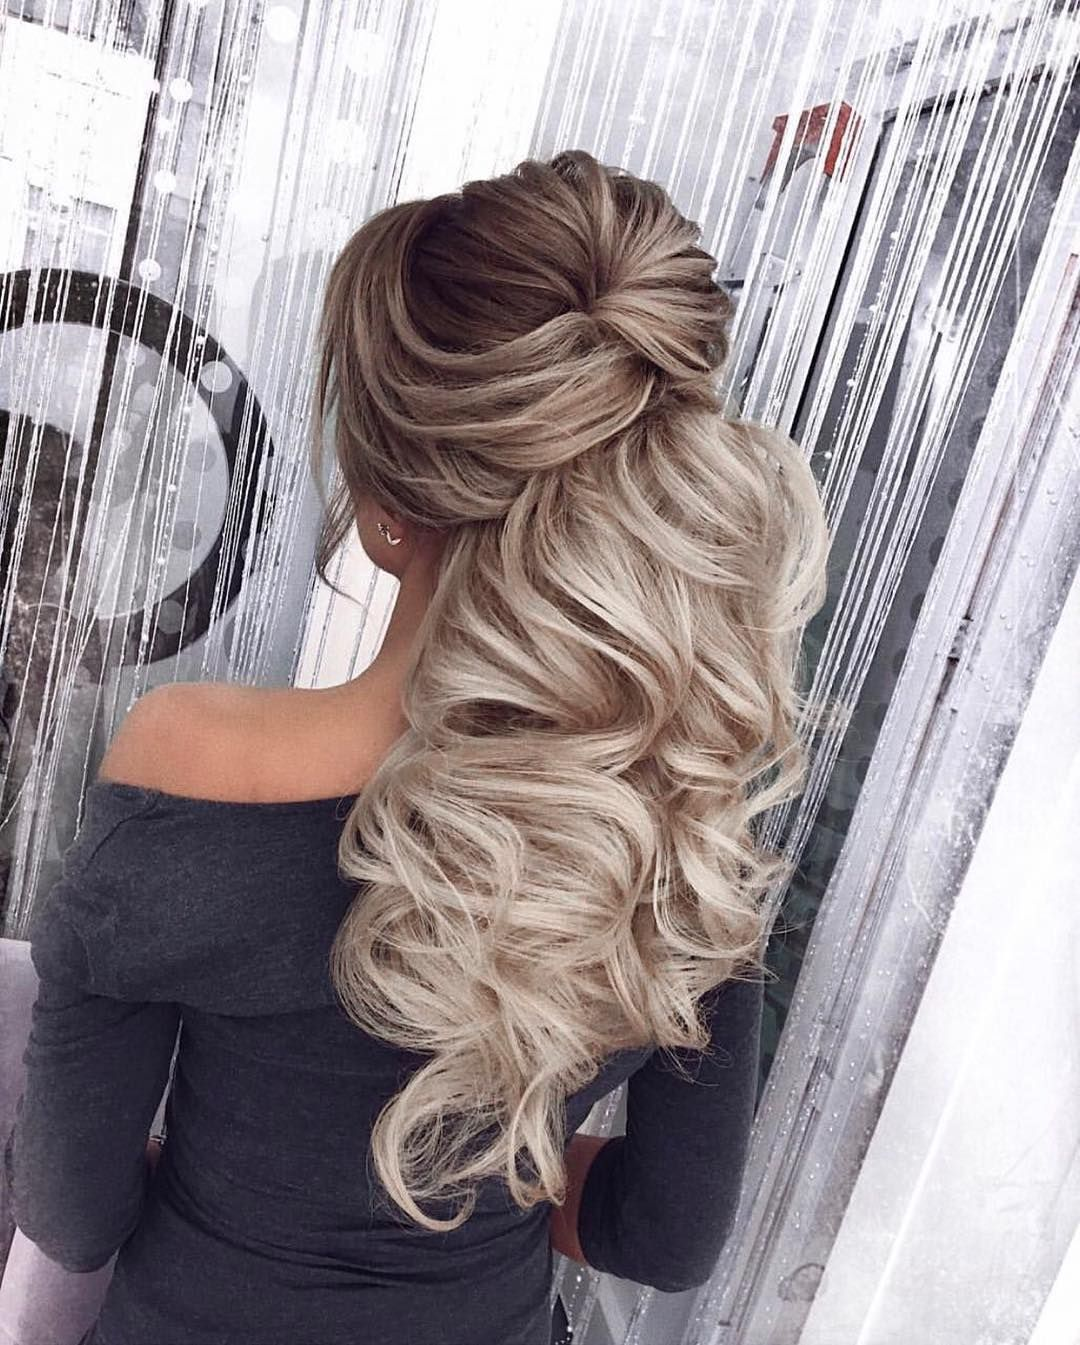 40 Gorgeous Wedding Hairstyles For Long Hair: 34 Gorgeous Trendy Wedding Hairstyles For Long Hair